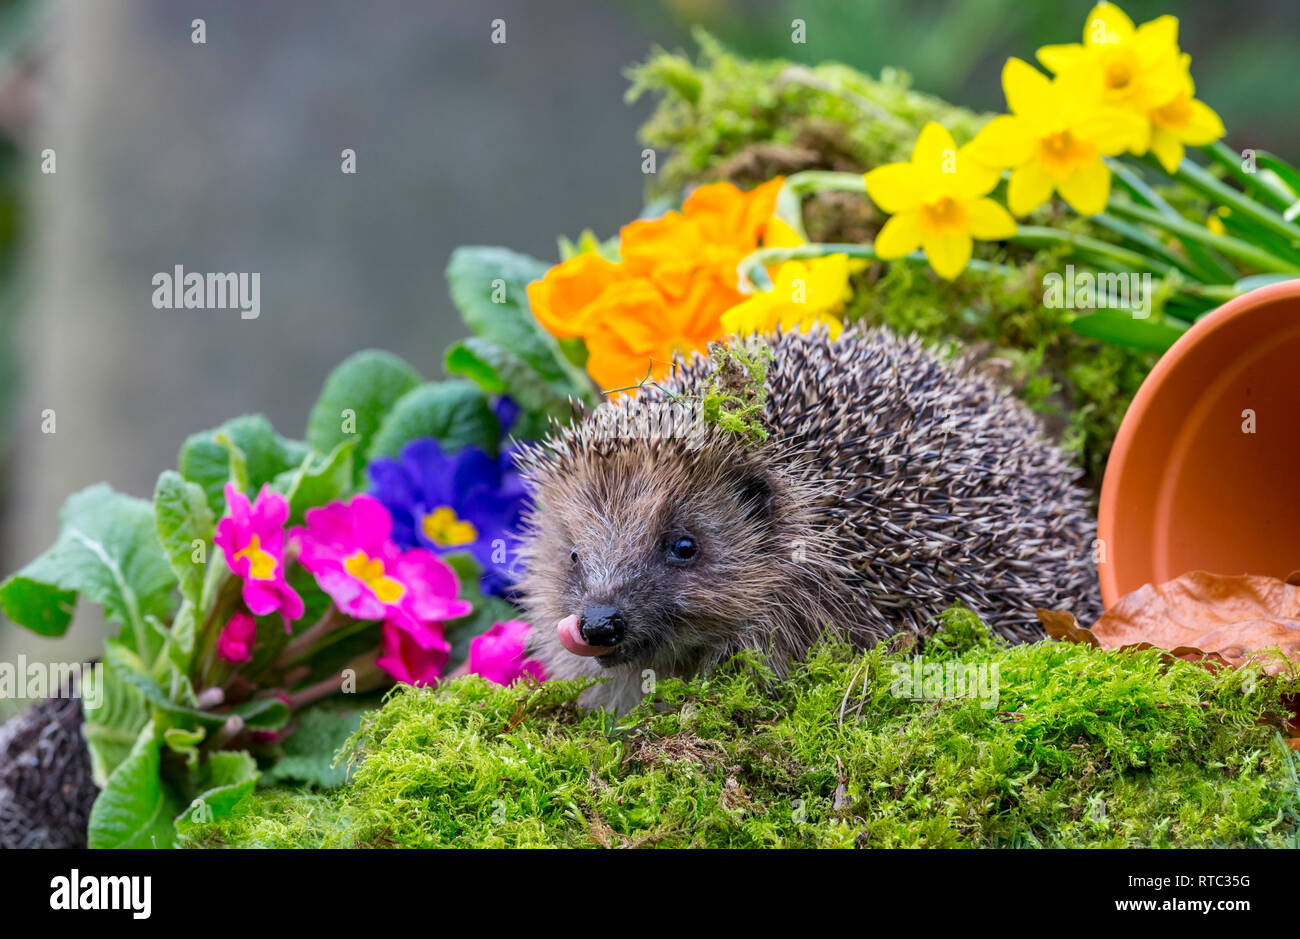 Hedgehog, (Erinaceus Europaeus) facing forward in natural garden habitat with colourful spring flowers, green moss and a plant pot. Landscape - Stock Image